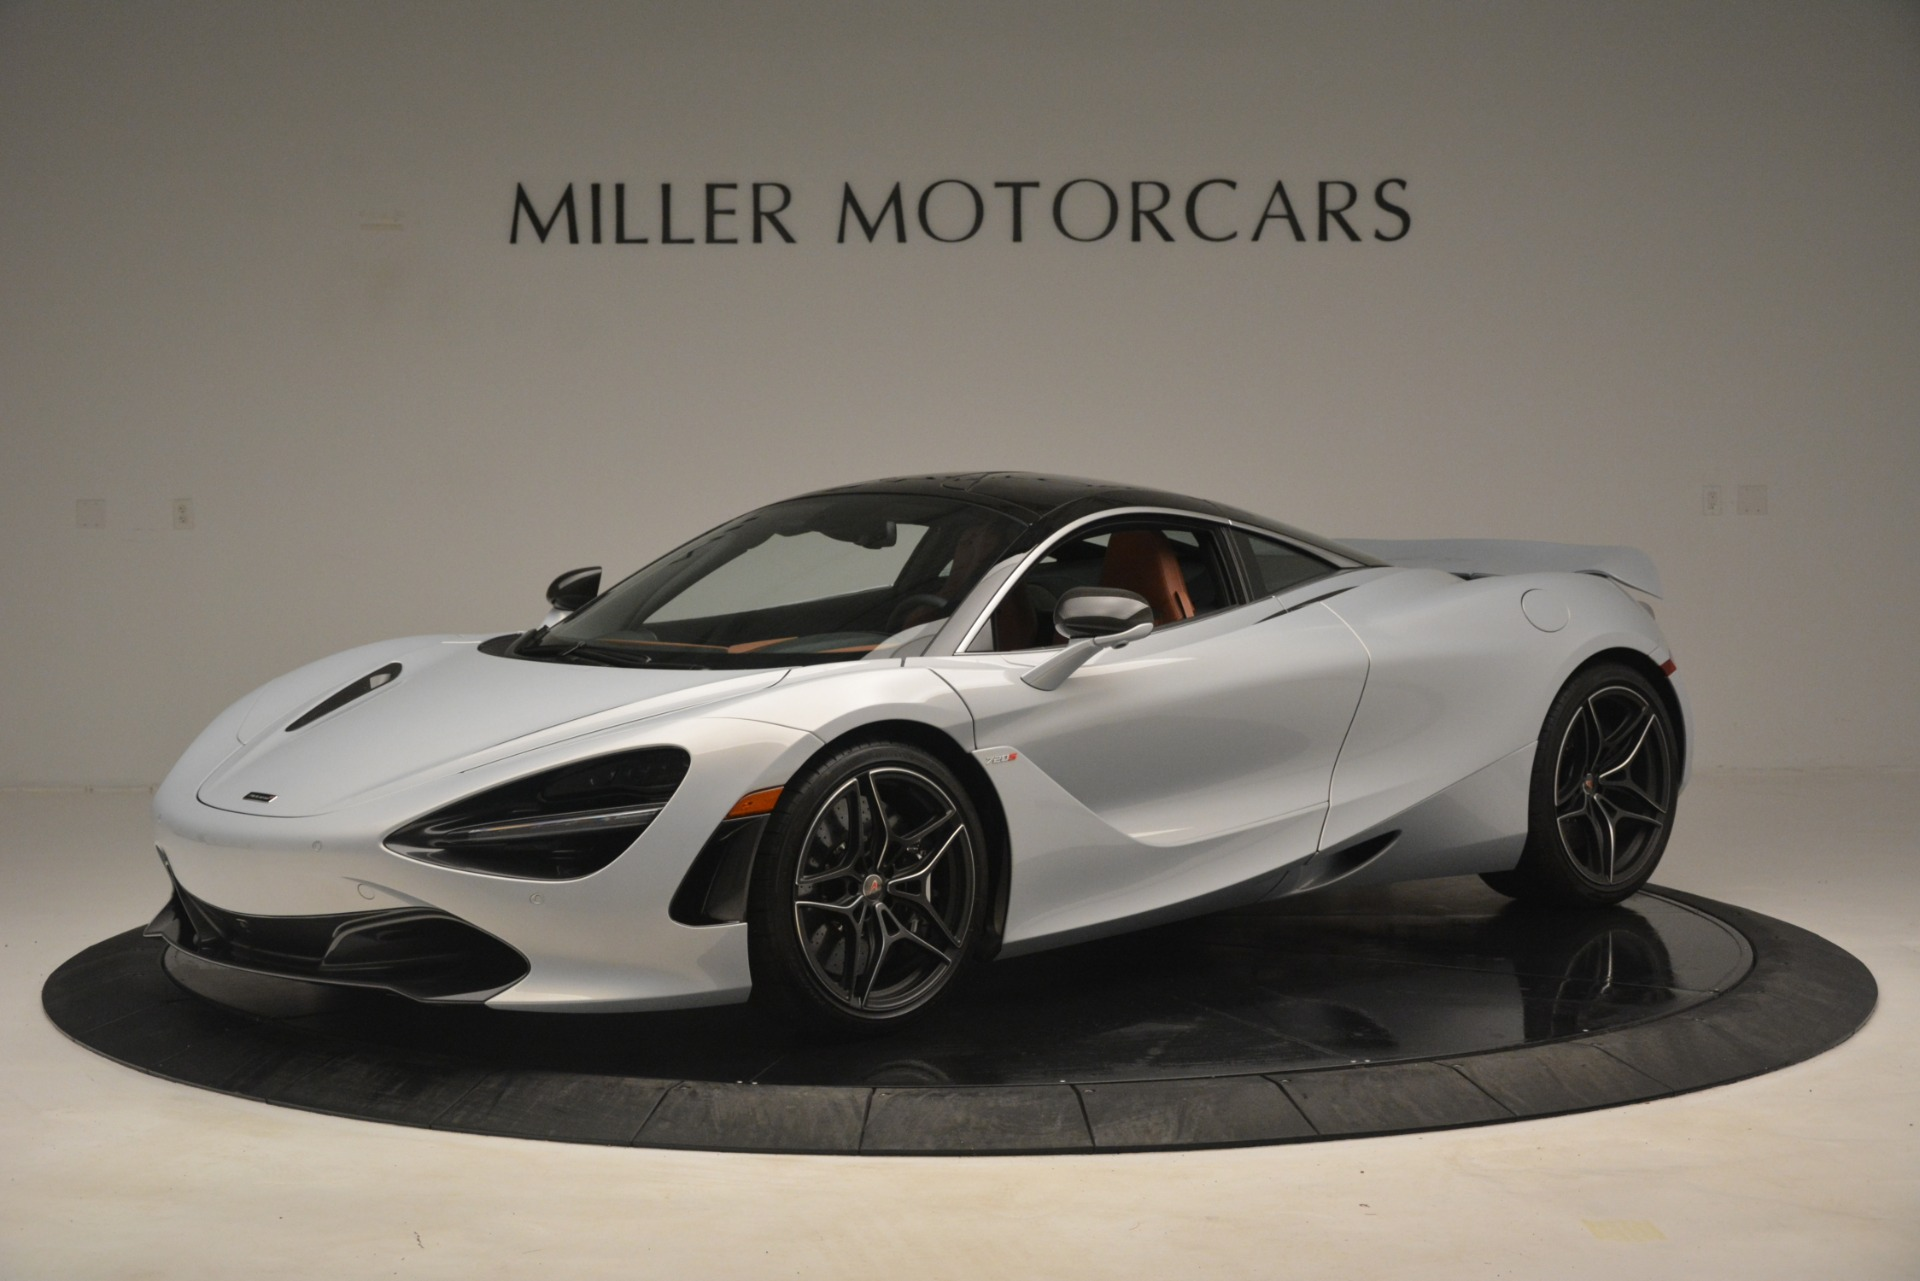 Used 2018 McLaren 720S Coupe for sale Sold at Alfa Romeo of Westport in Westport CT 06880 1